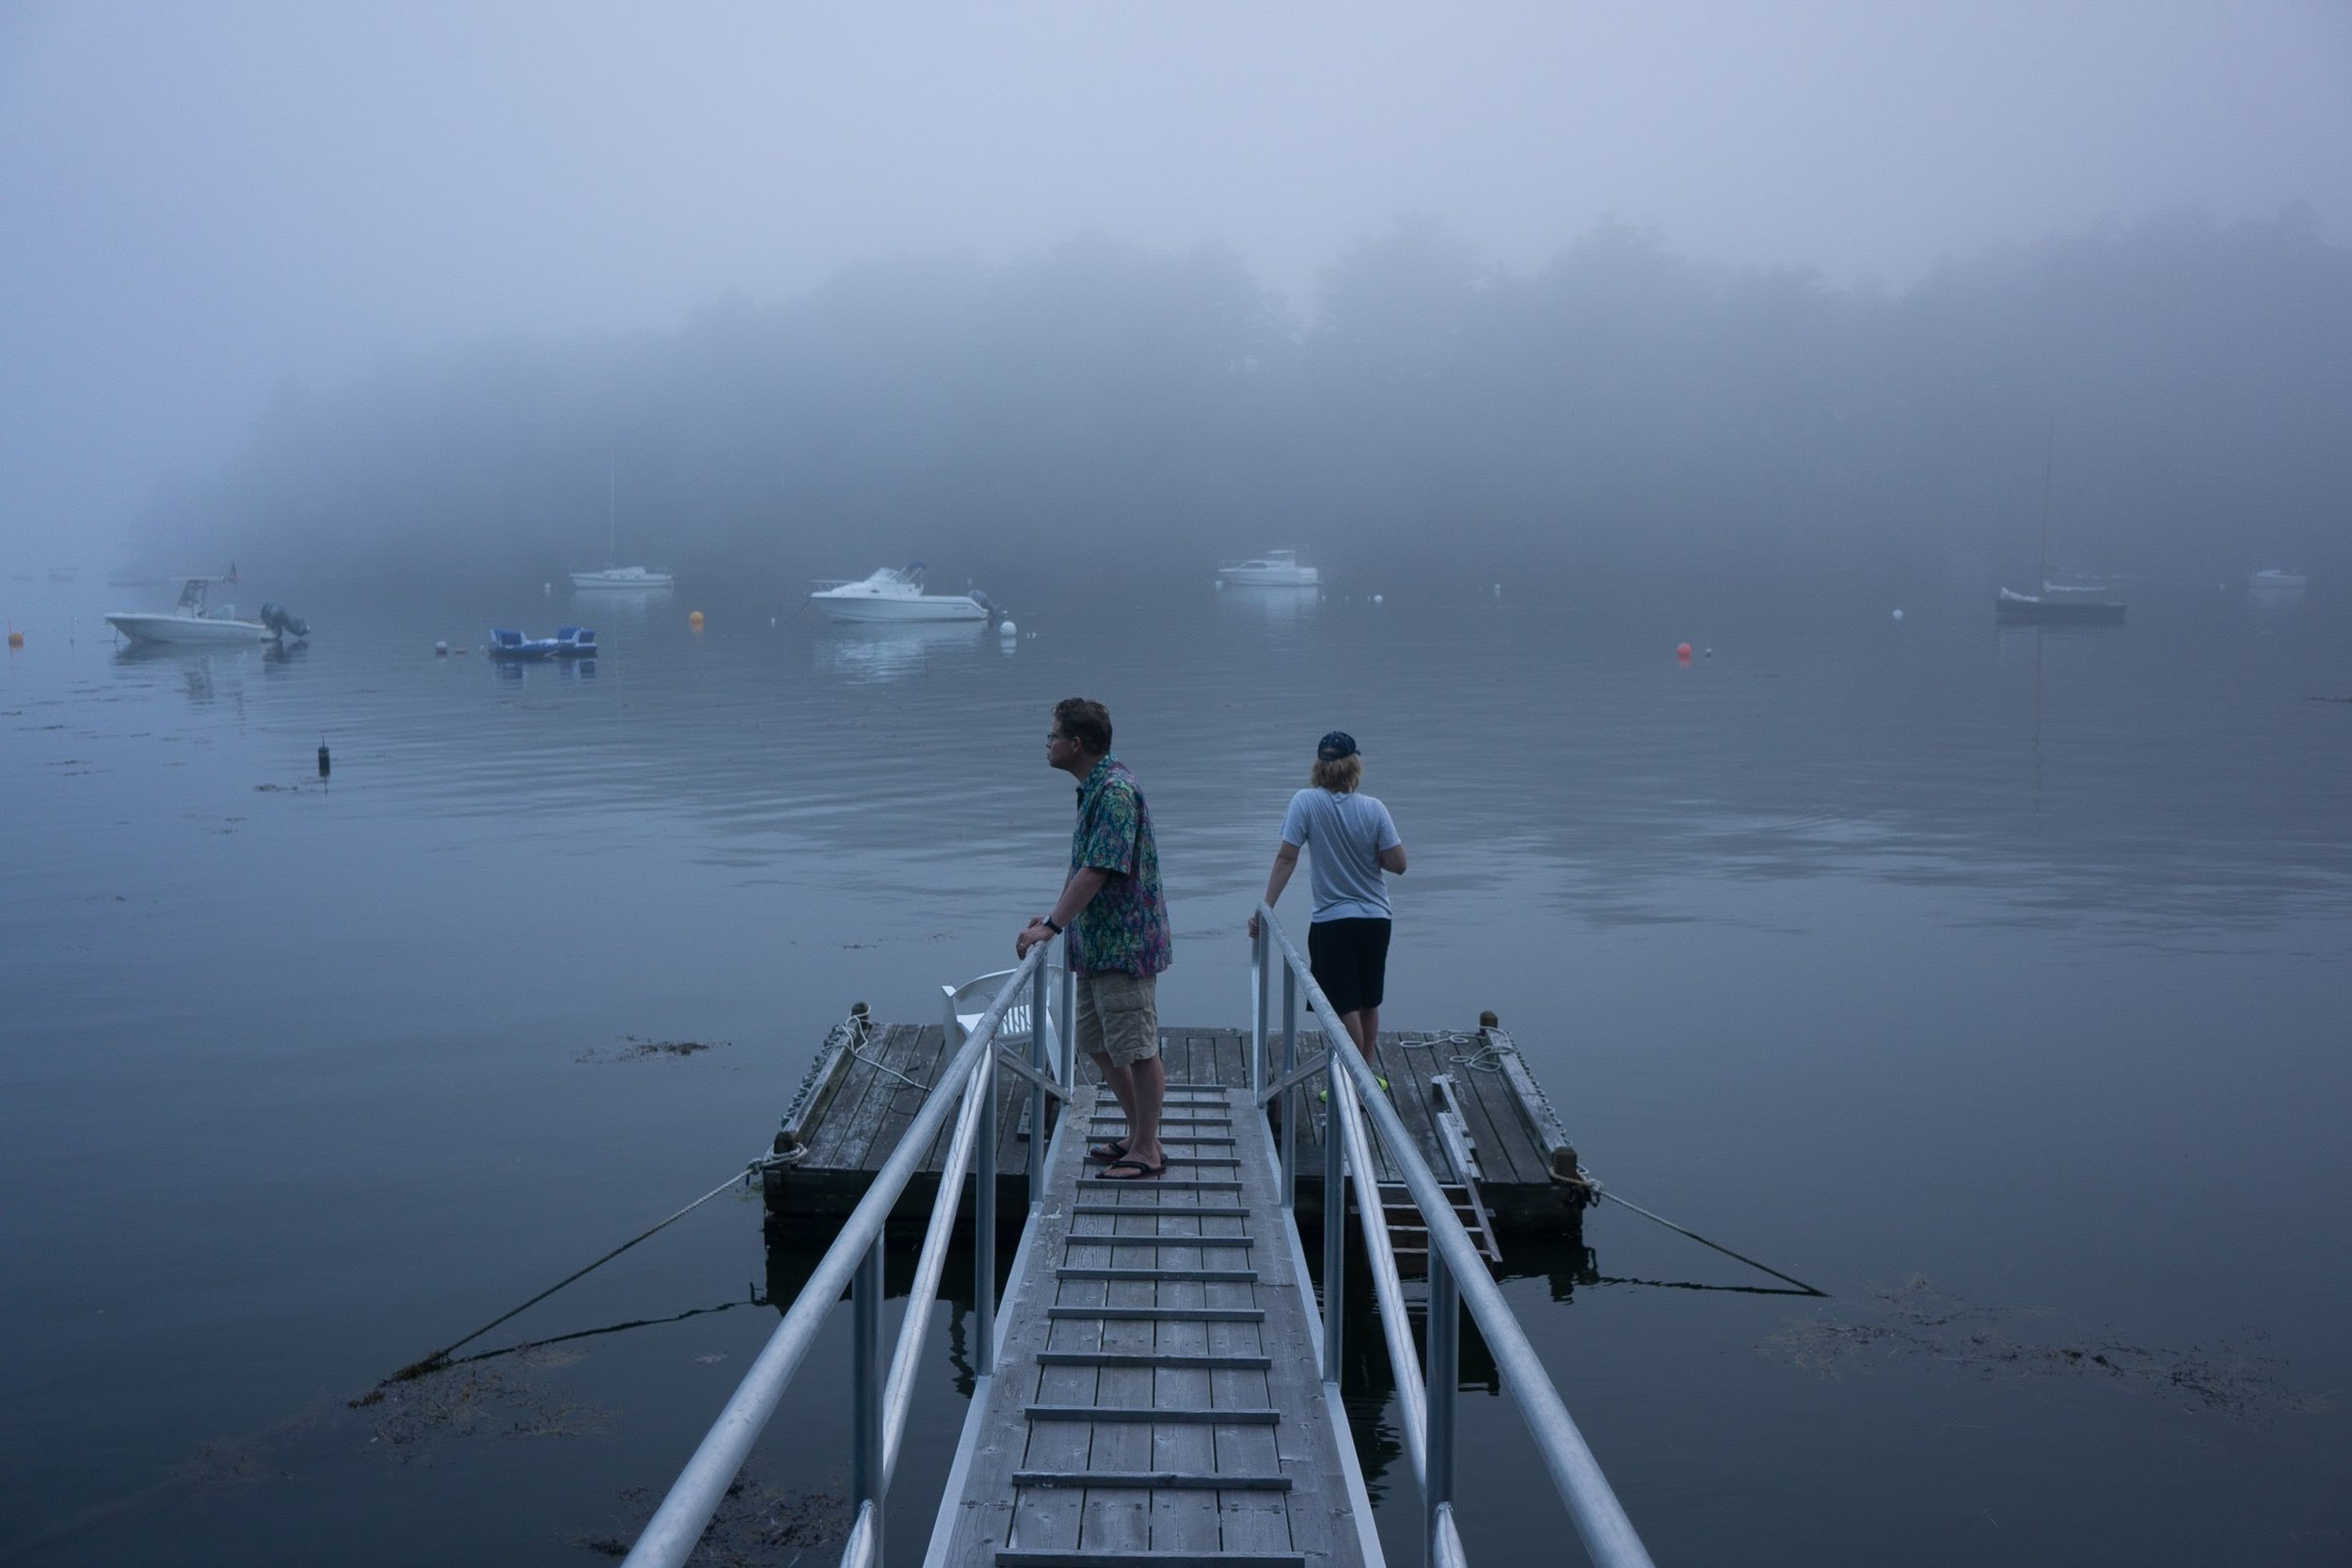 Calm of Fog at High Tide